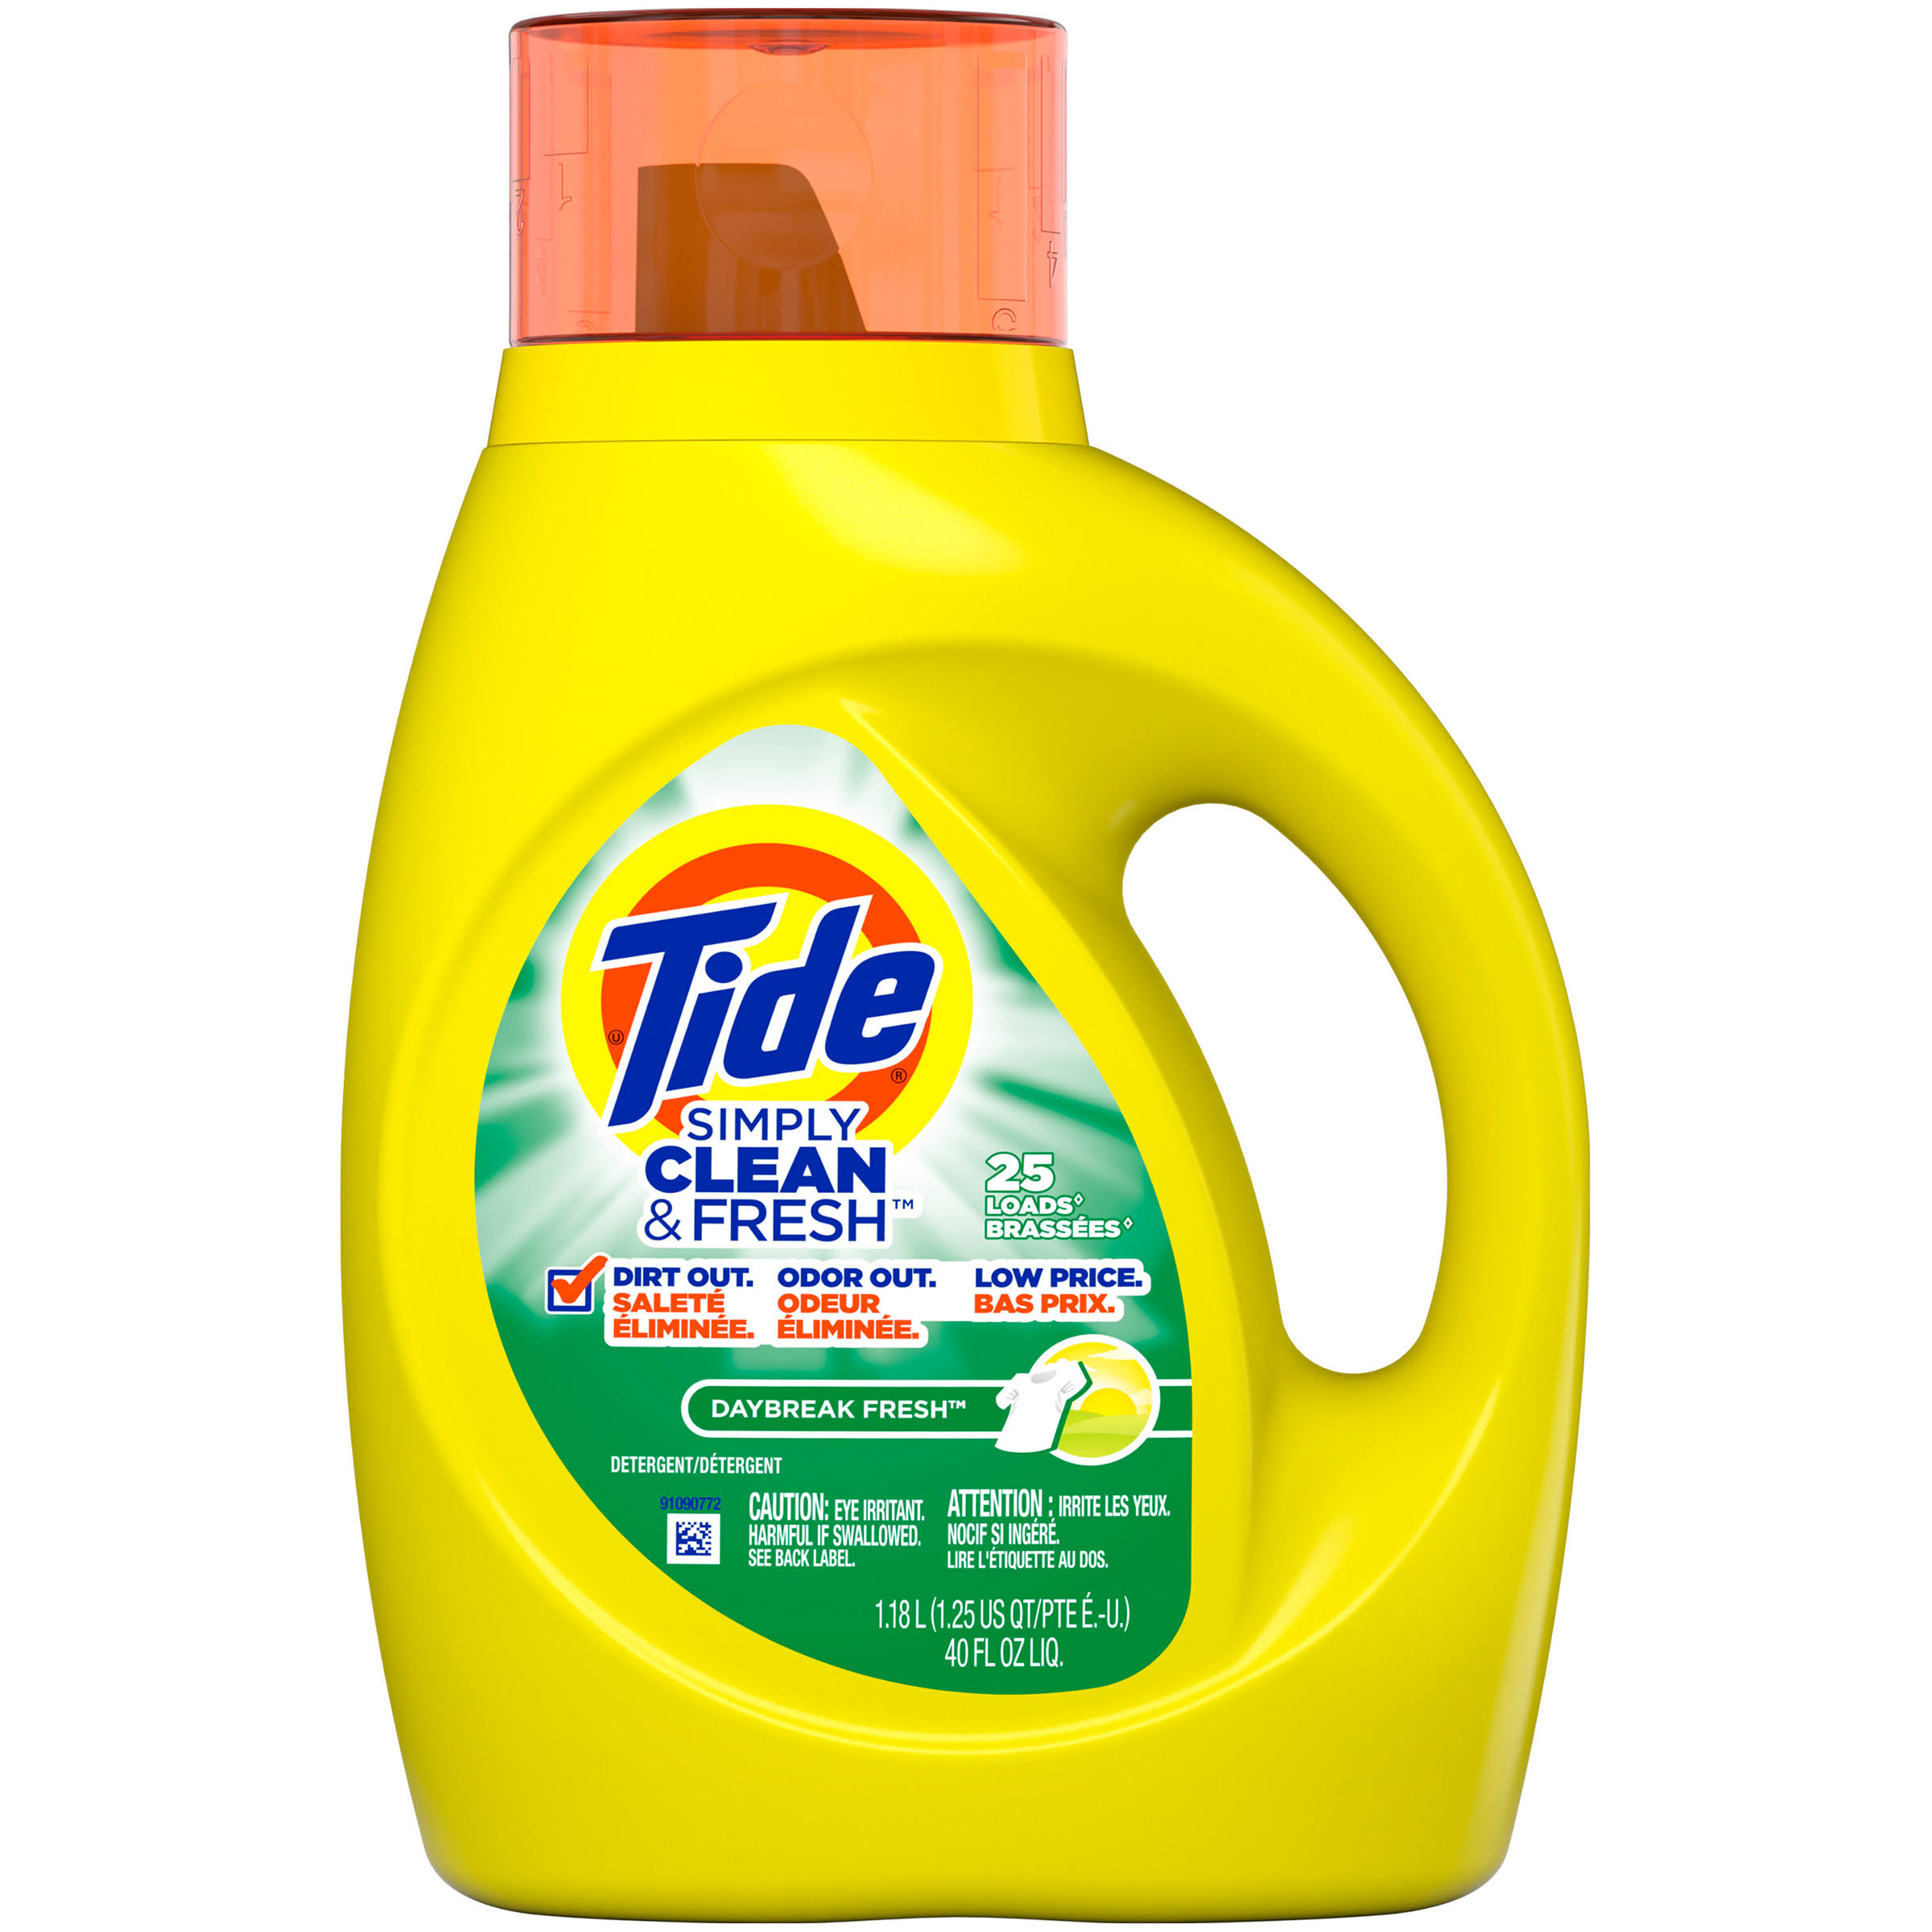 Tide Simply Clean & Fresh Detergent - Daybreak Fresh, 40 fl oz, 25 Loads